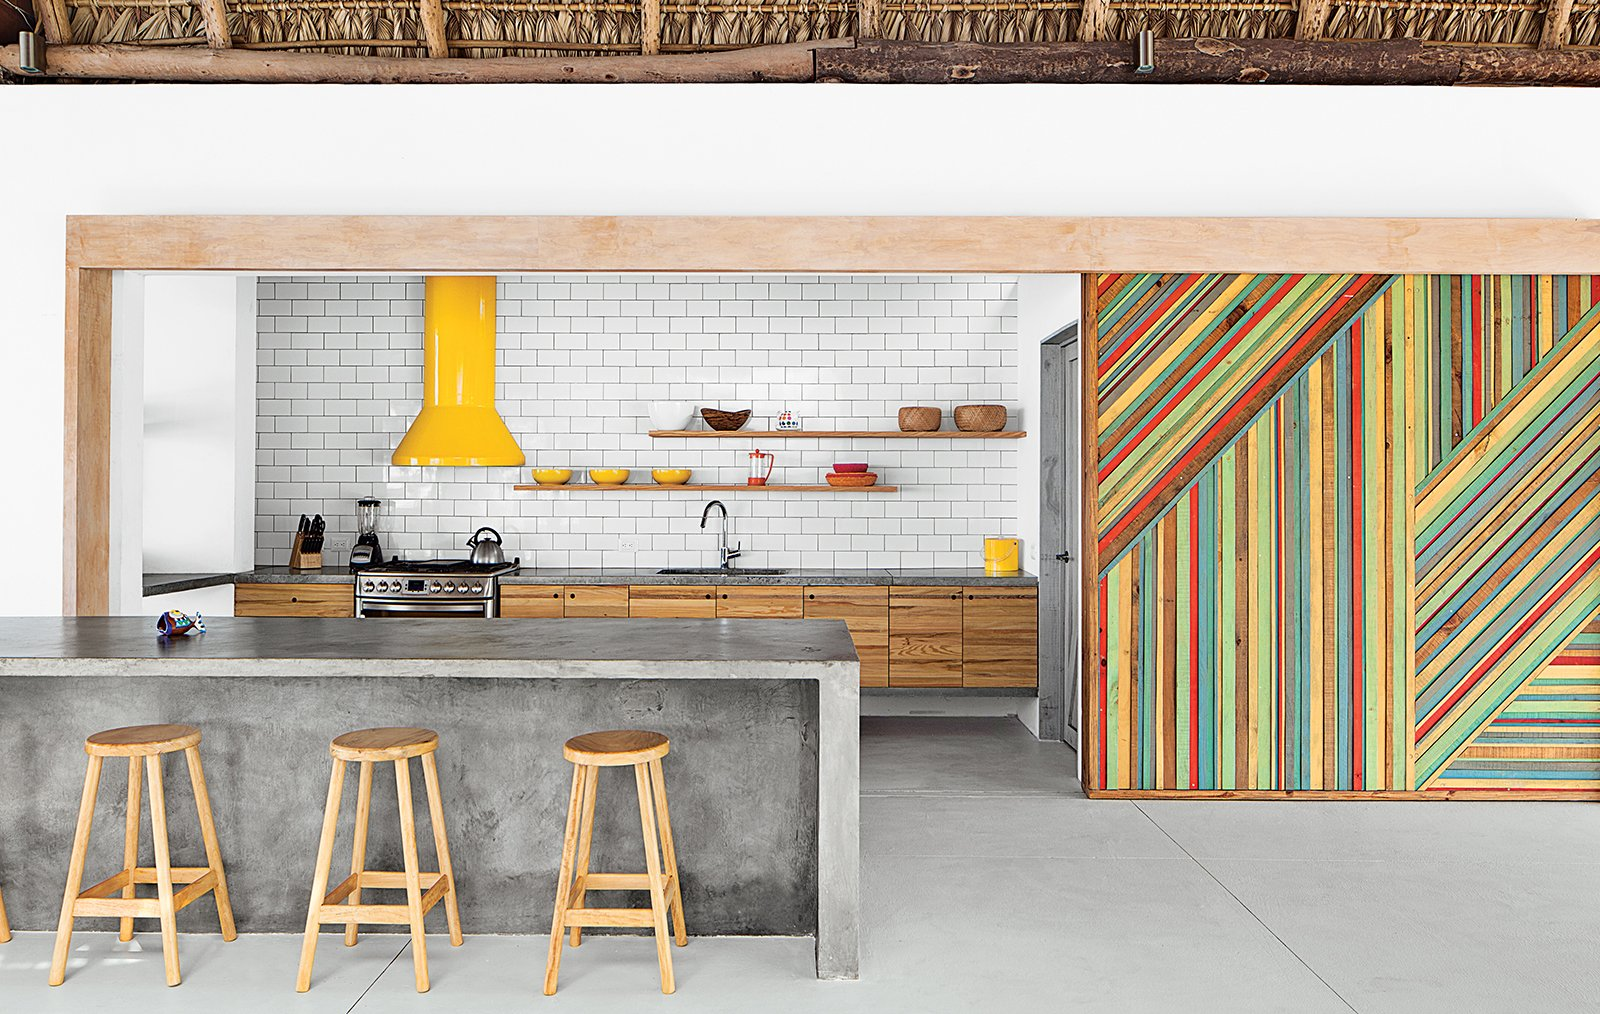 By eliminating walls and incorporating a series of interior gardens, architect José Roberto Paredes creates an eclectic and inspired El Salvador beach house. In the kitchen, rough-hewn materials like a eucalyptus-log-and-thatch roof offset the monolithic concrete island and glossy subway tile backsplash. Claudia & Harry Washington built the vivid wooden sliding walls, which are inspired by the palm leaves that change color and create diagonal patterns in trees near the house. The bar stools were a street market discovery.  Photo 3 of 6 in Bursts of Yellow and Indoor Gardens Are Just Two Reasons to Love This Home